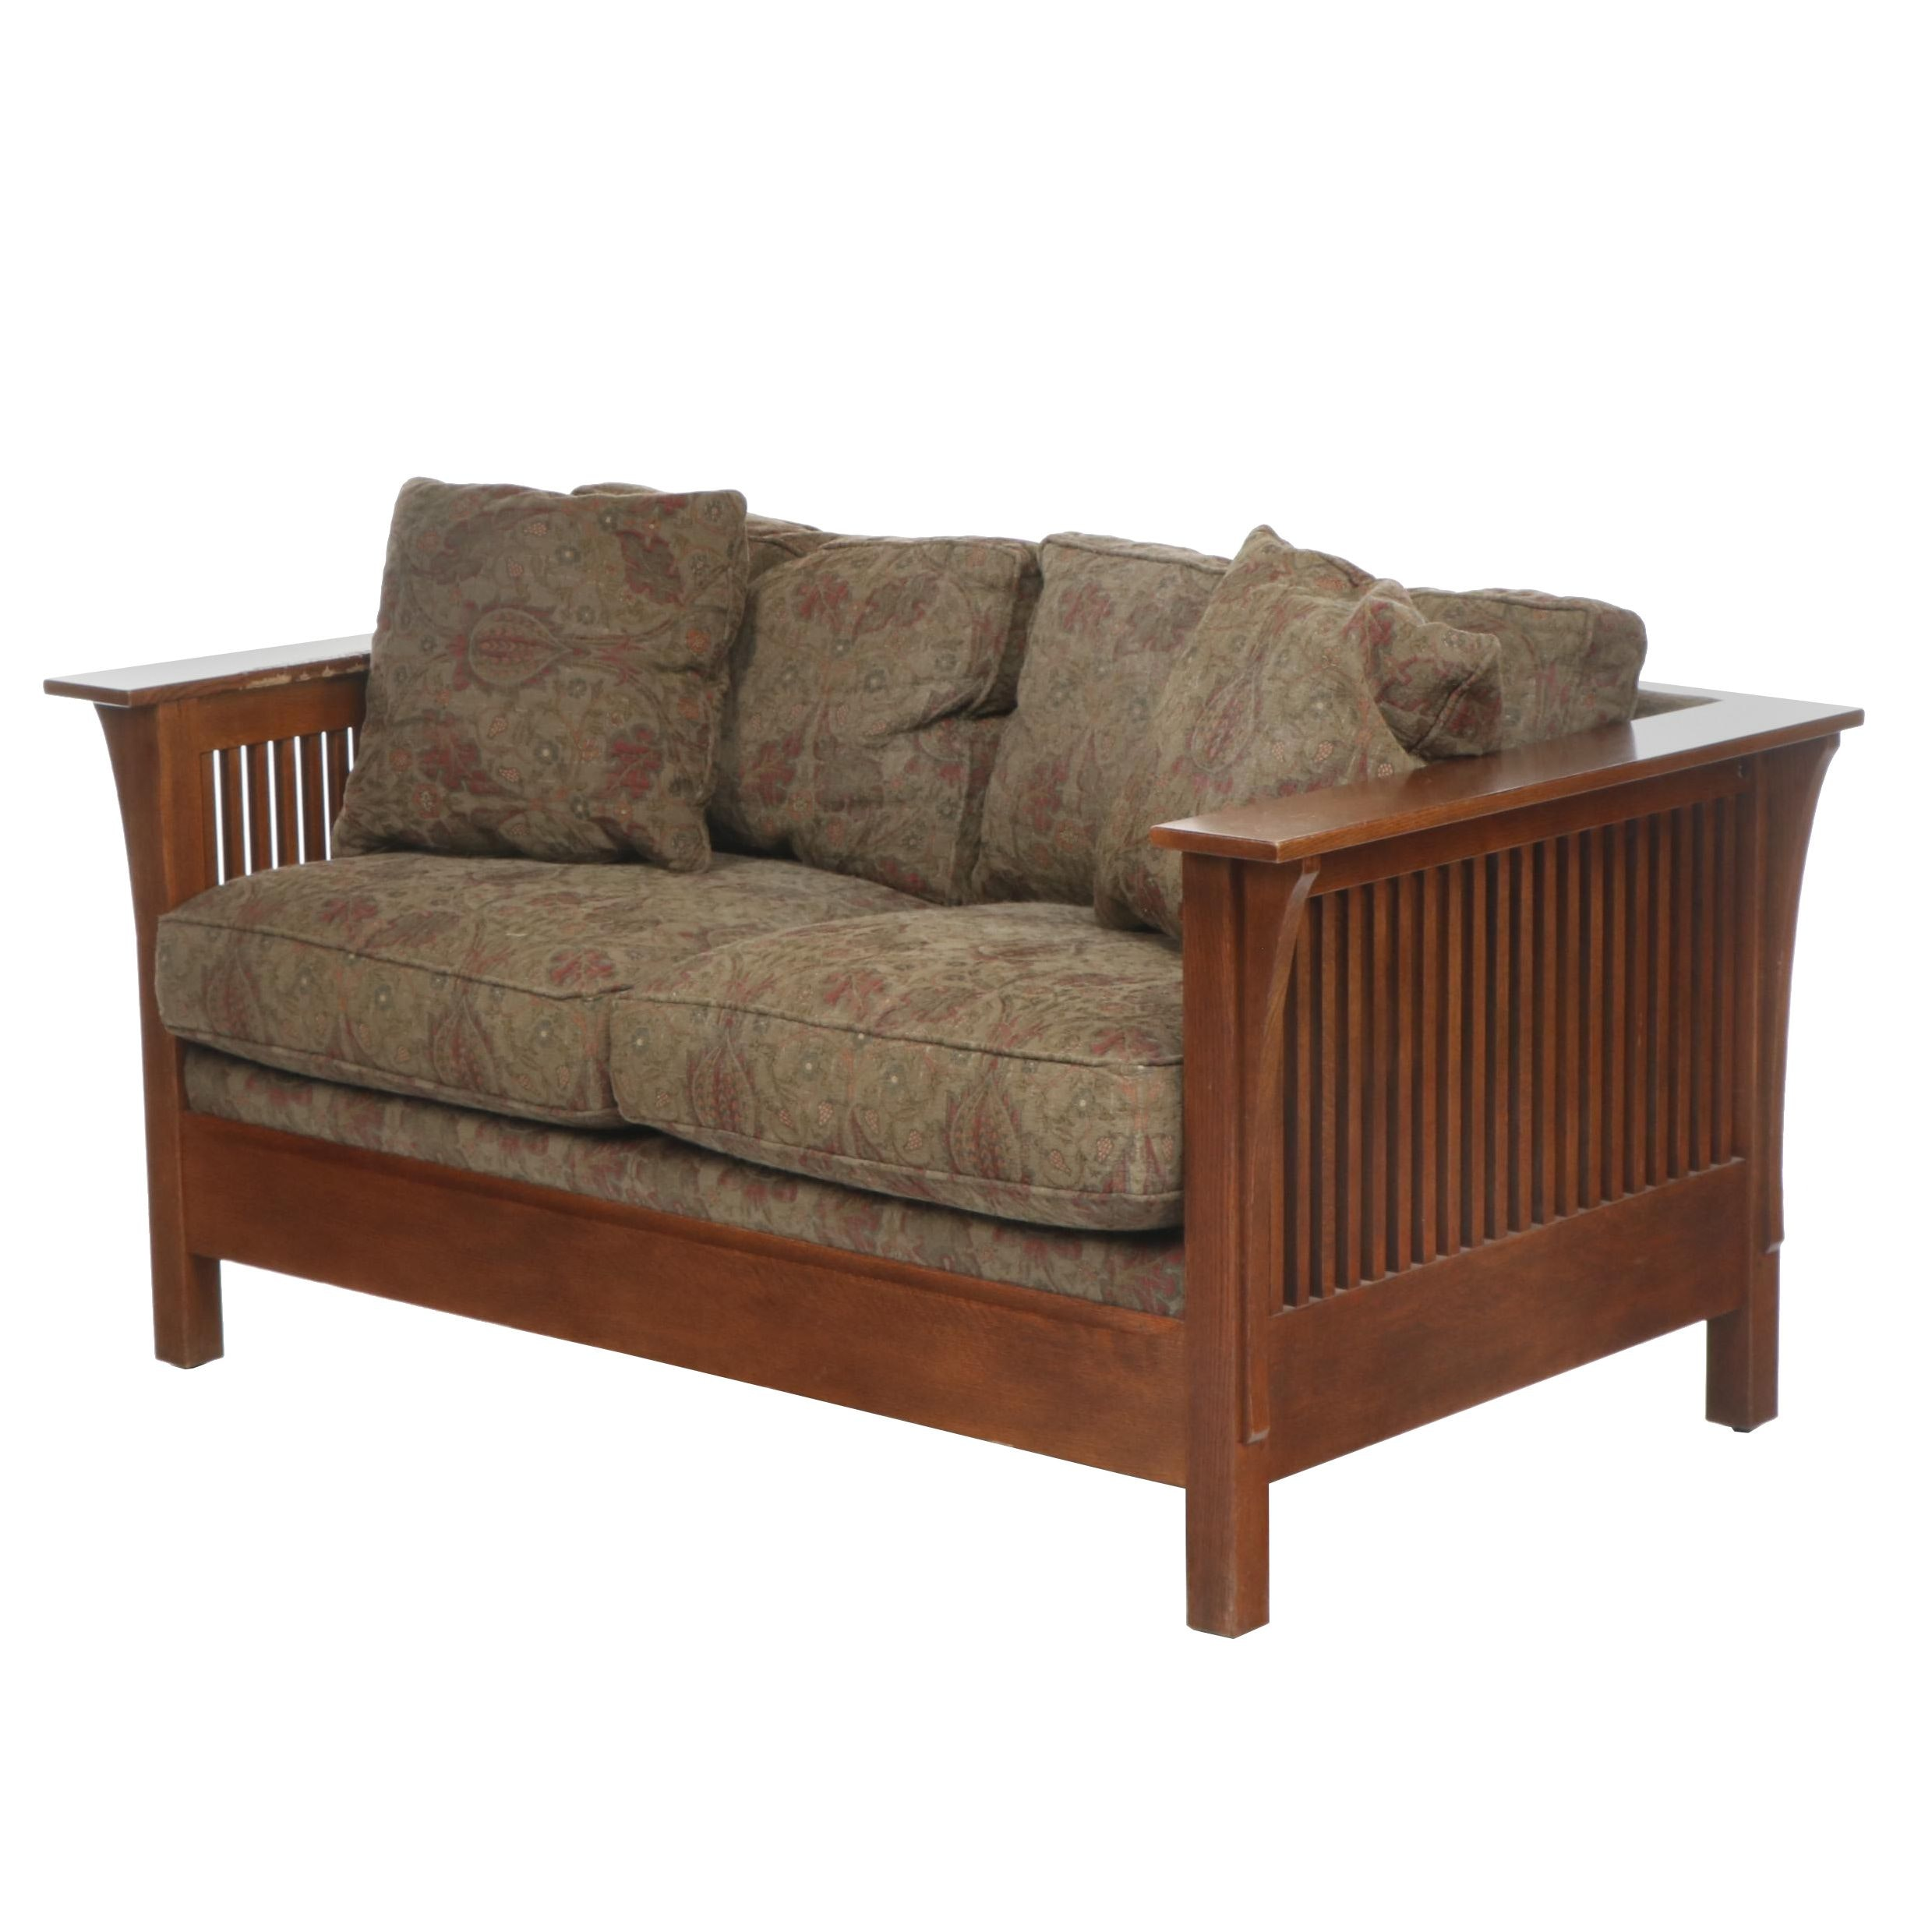 Contemporary Stickley Arts & Crafts Oak Upholstered Loveseat Sofa